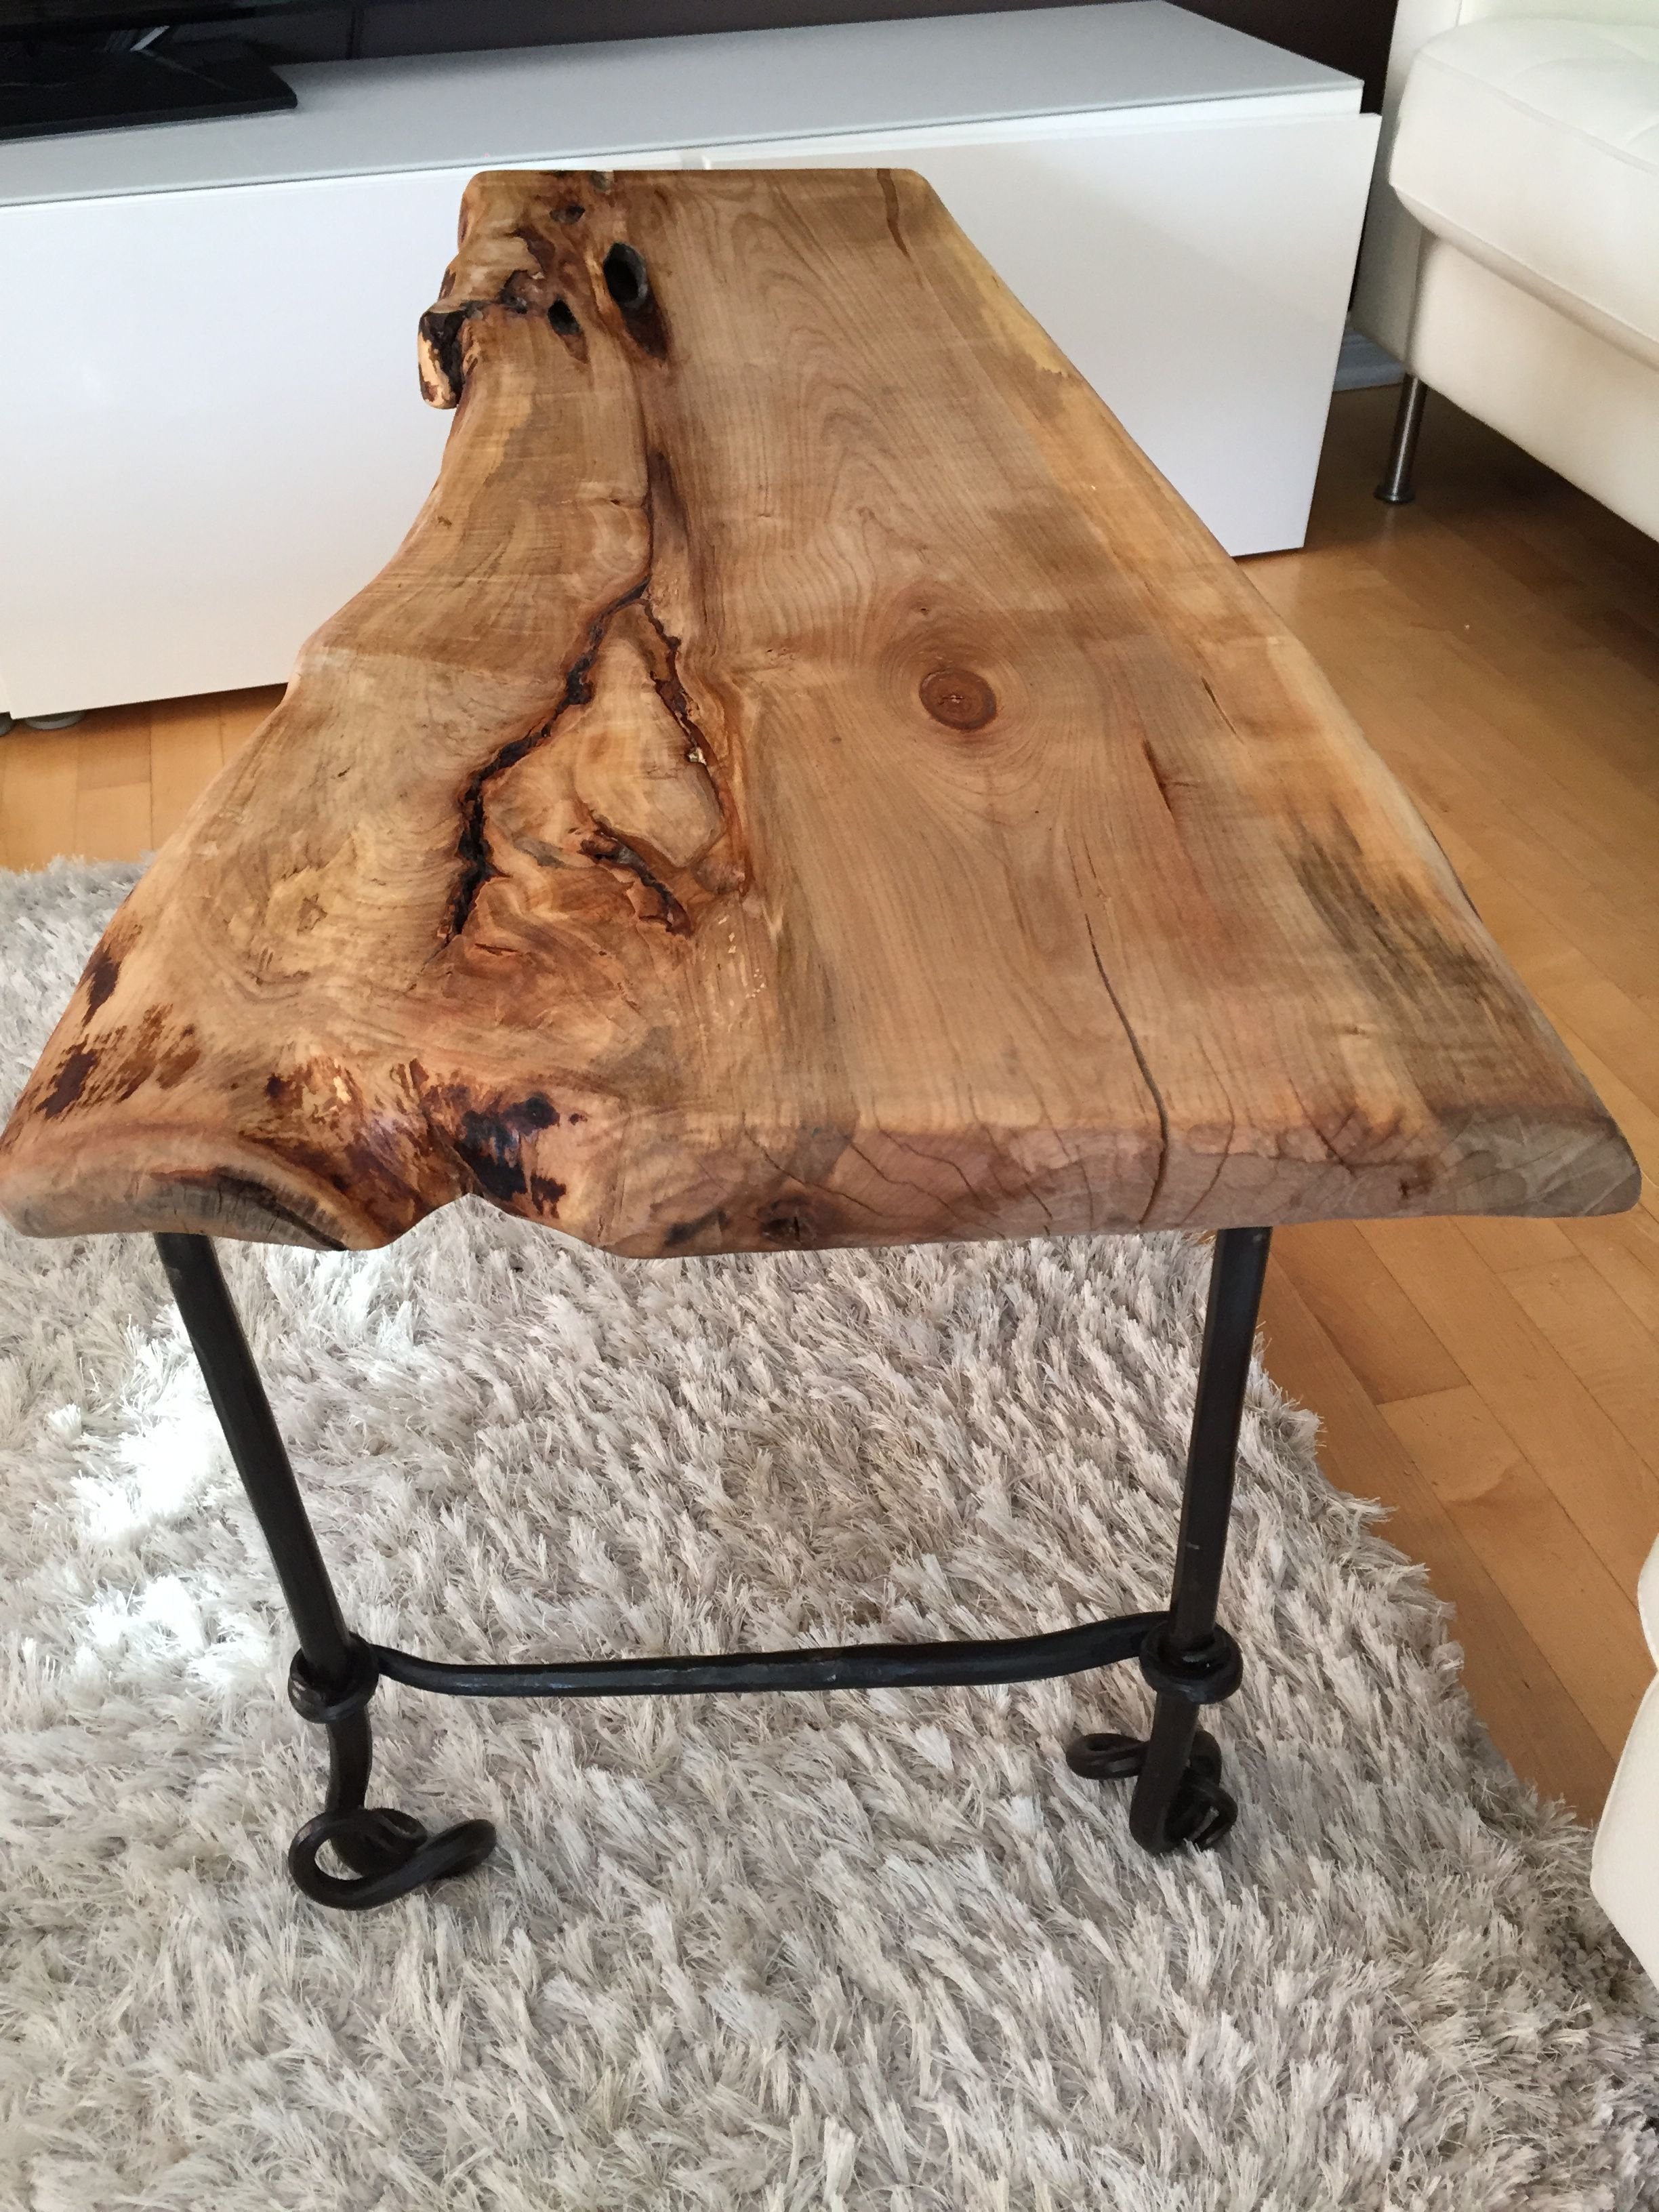 tree stump furniture ideas. Using Recycled Materials For DIY Tree Stump Table? Why Not? Furniture Ideas